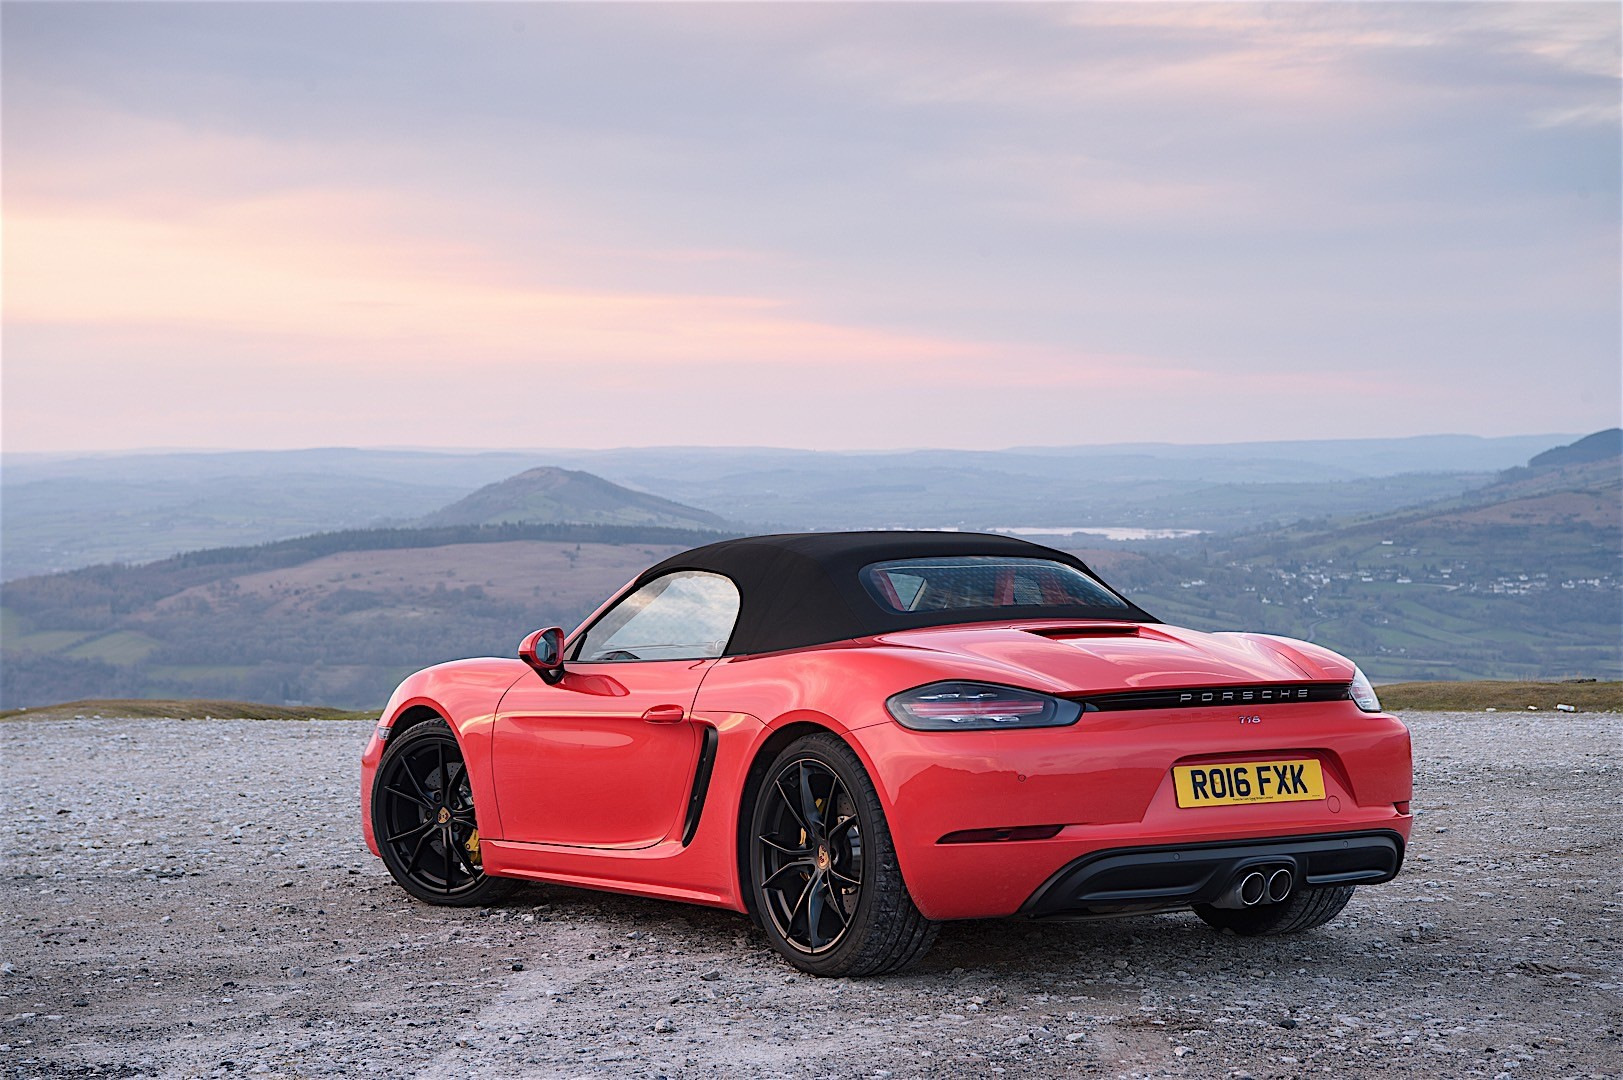 porsche boxster motor with Porsche 718 Boxster S 2016 on Porsche 718 Boxster S 2016 together with Techart Adds Muscle To The Porsche 718 Cayman further  together with Sale further Firing Order Ford 390 427 428.